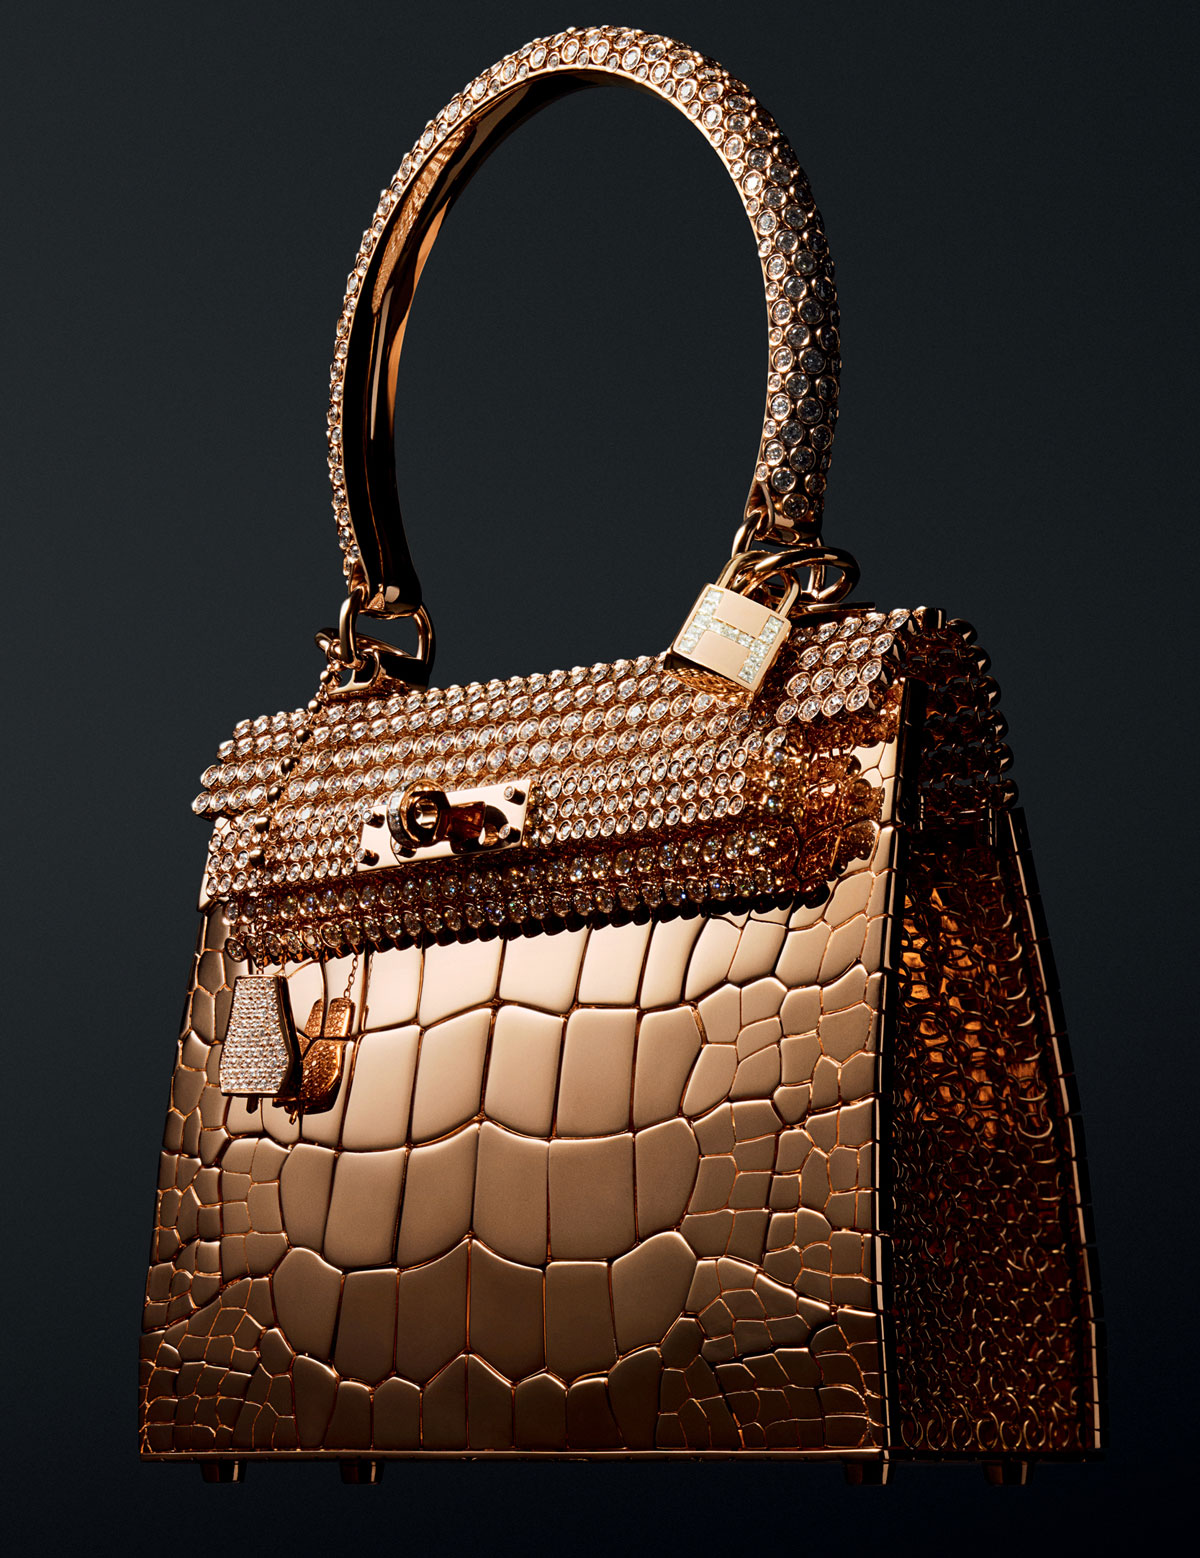 Most Expensive Handbag in the World